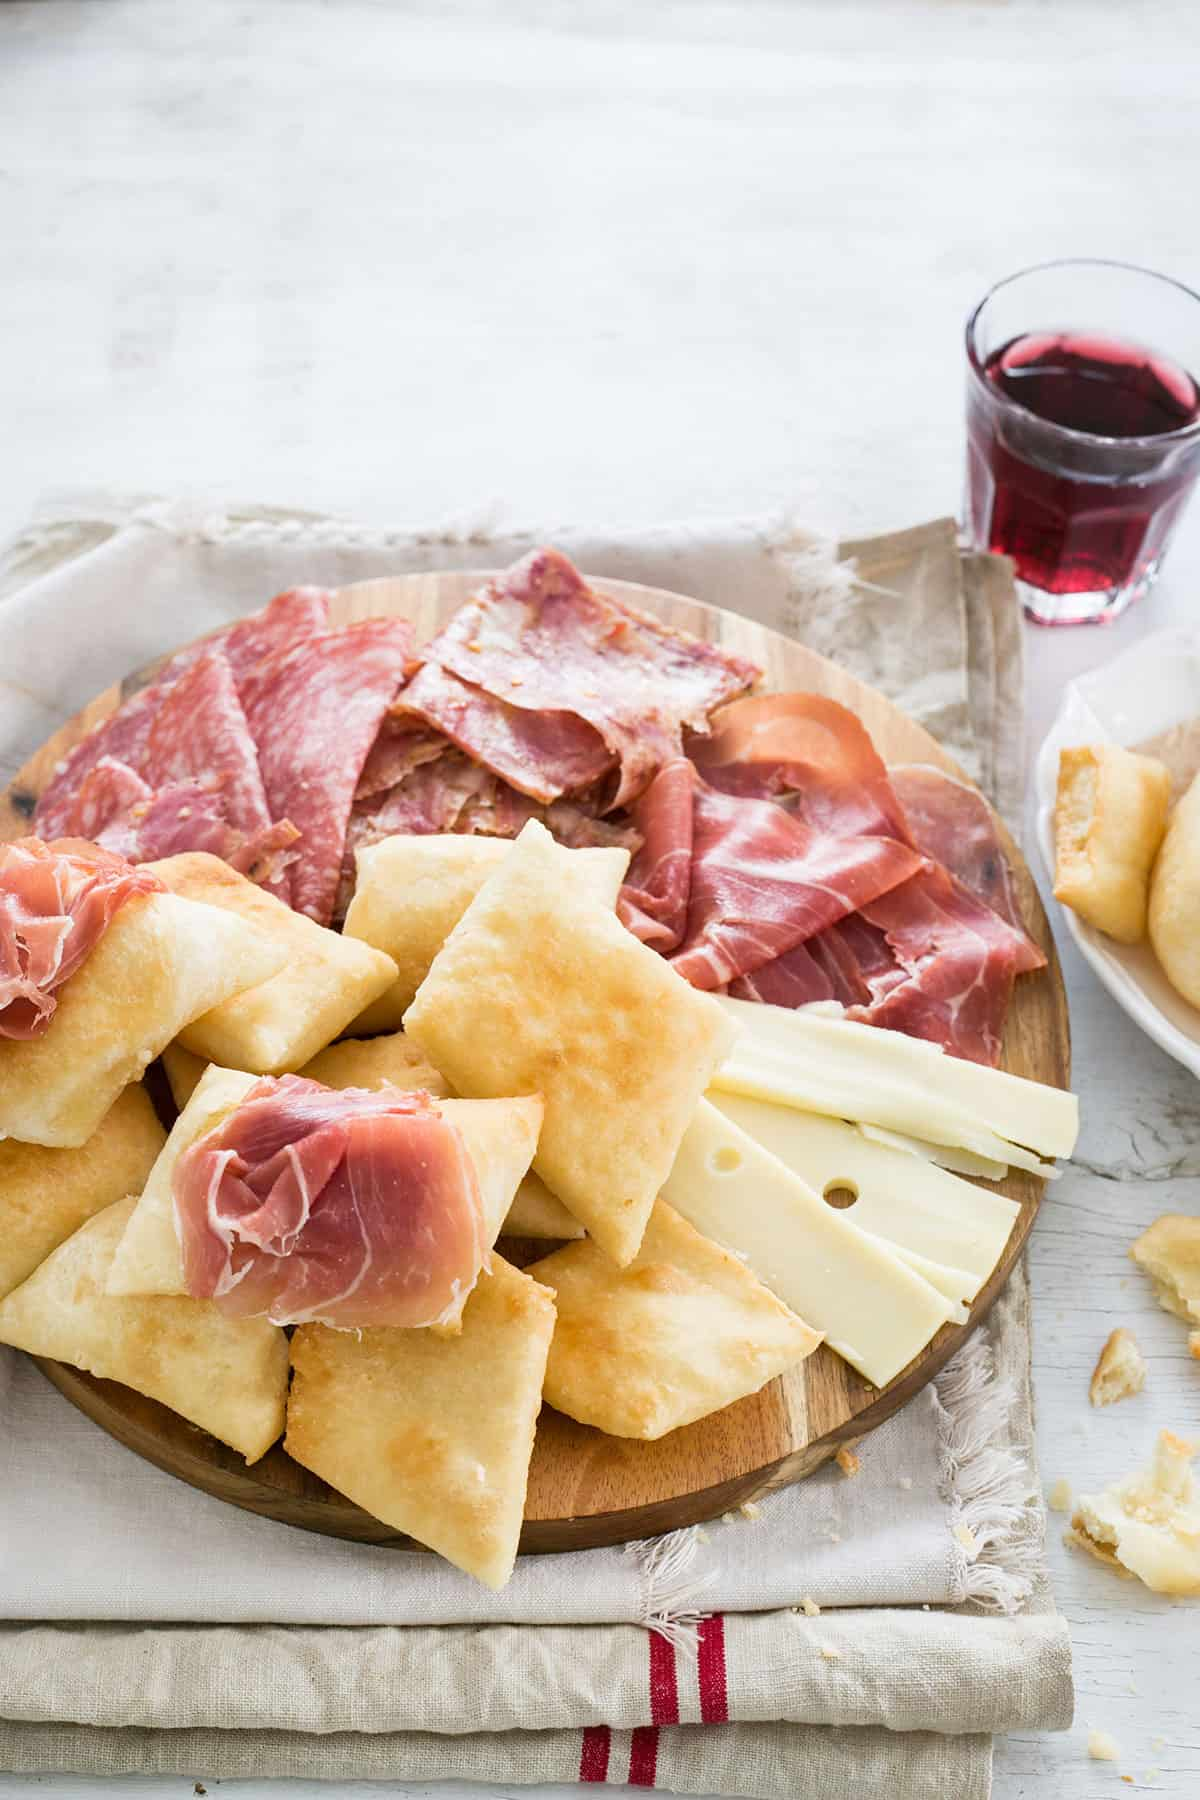 Gnocco fritto served with various cold cuts and cheese on a cutting board.